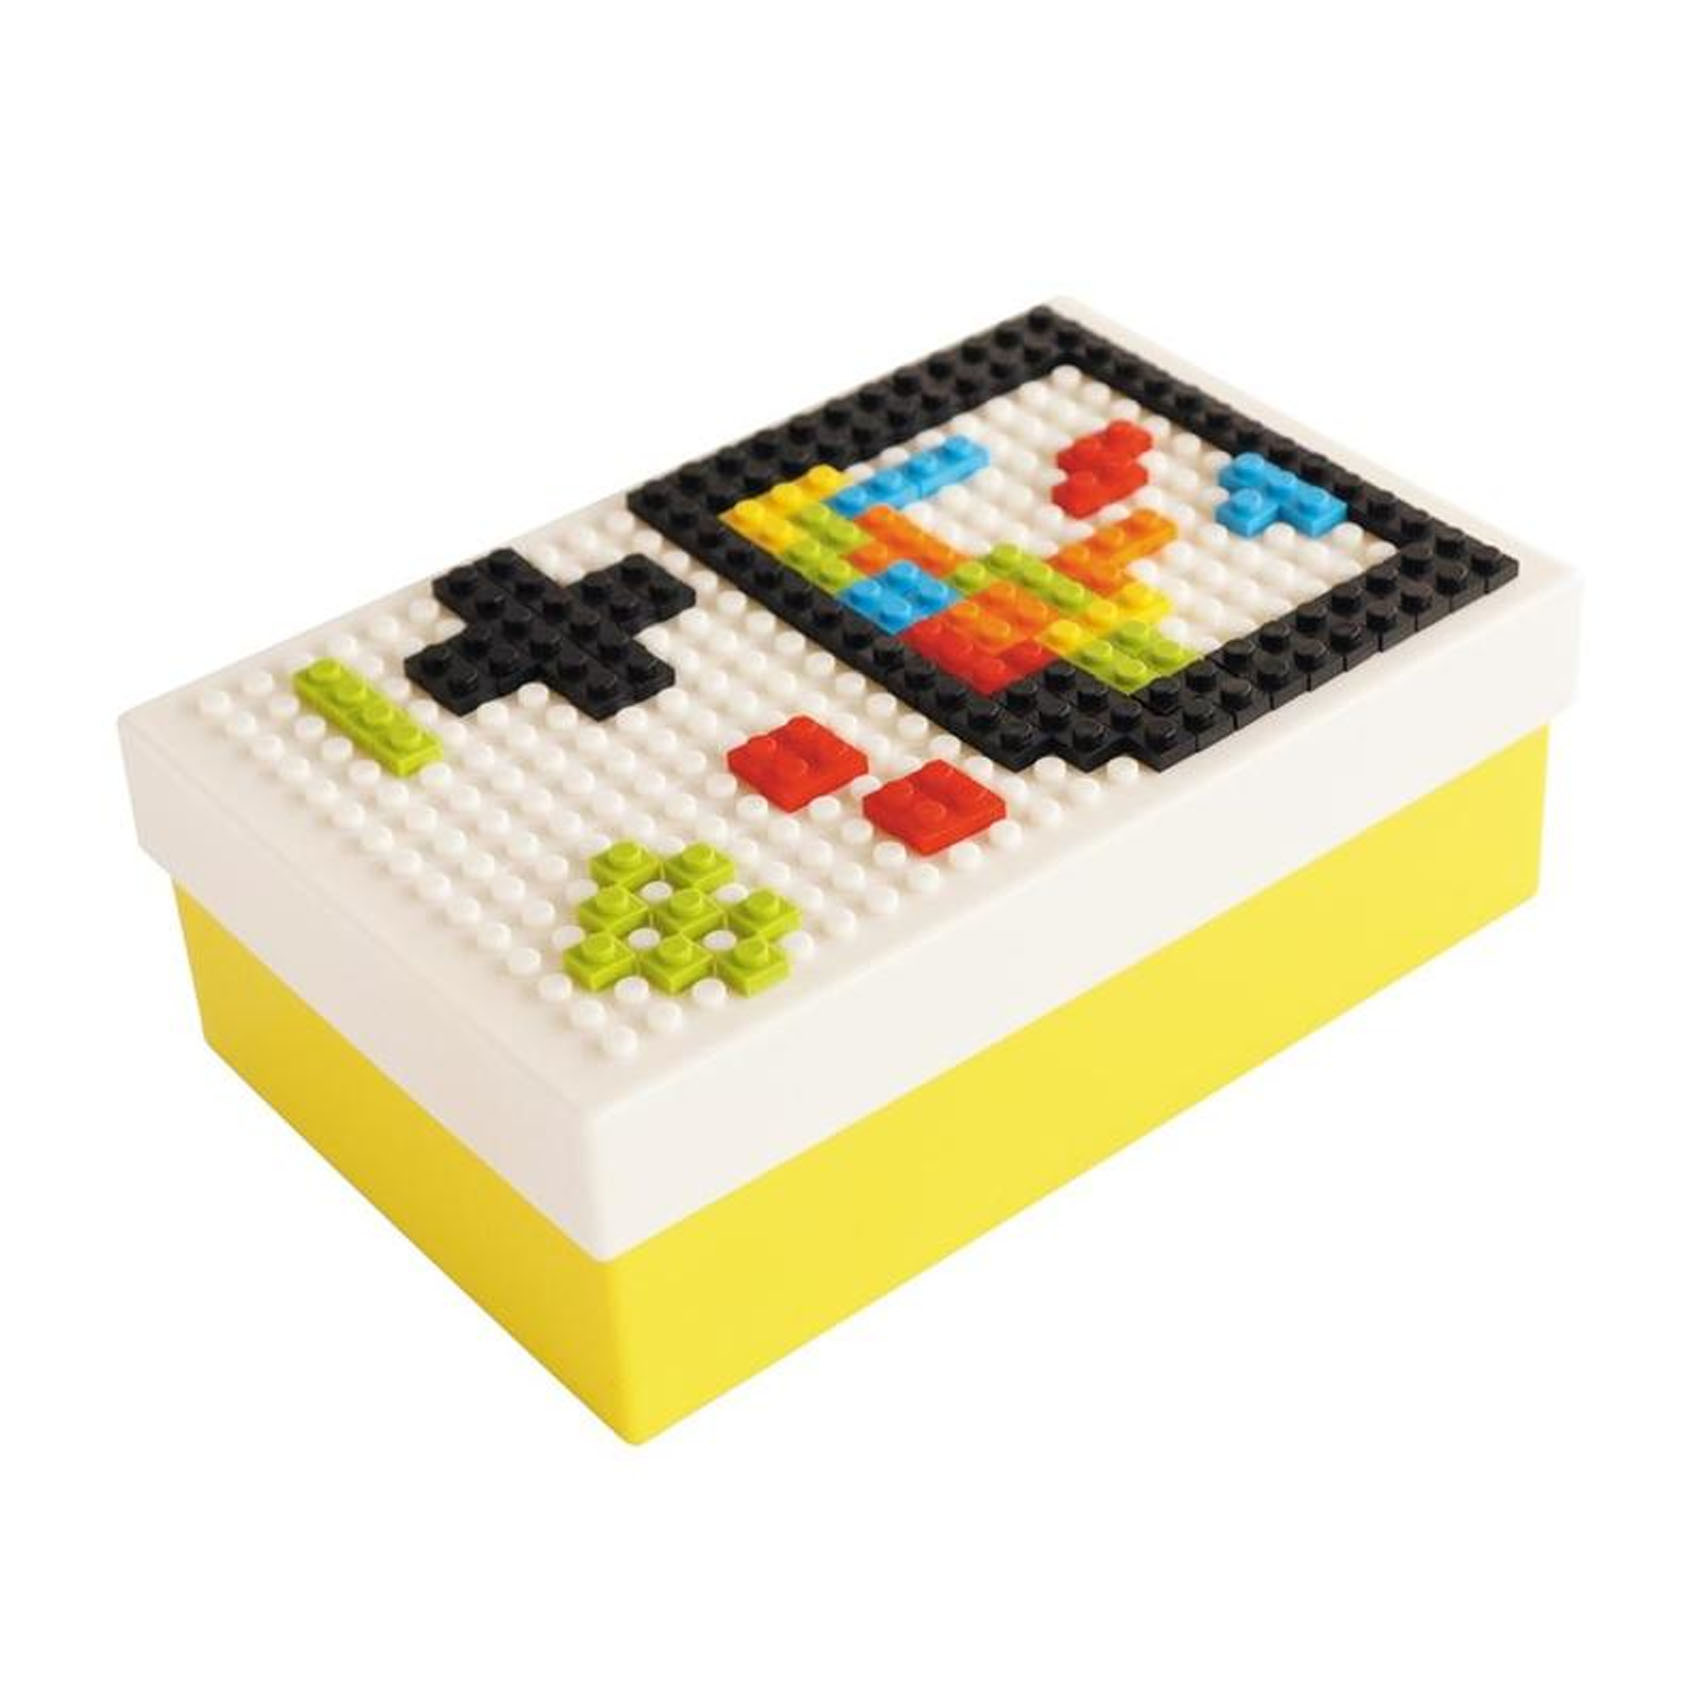 DIY Building Blocks Lunch Box